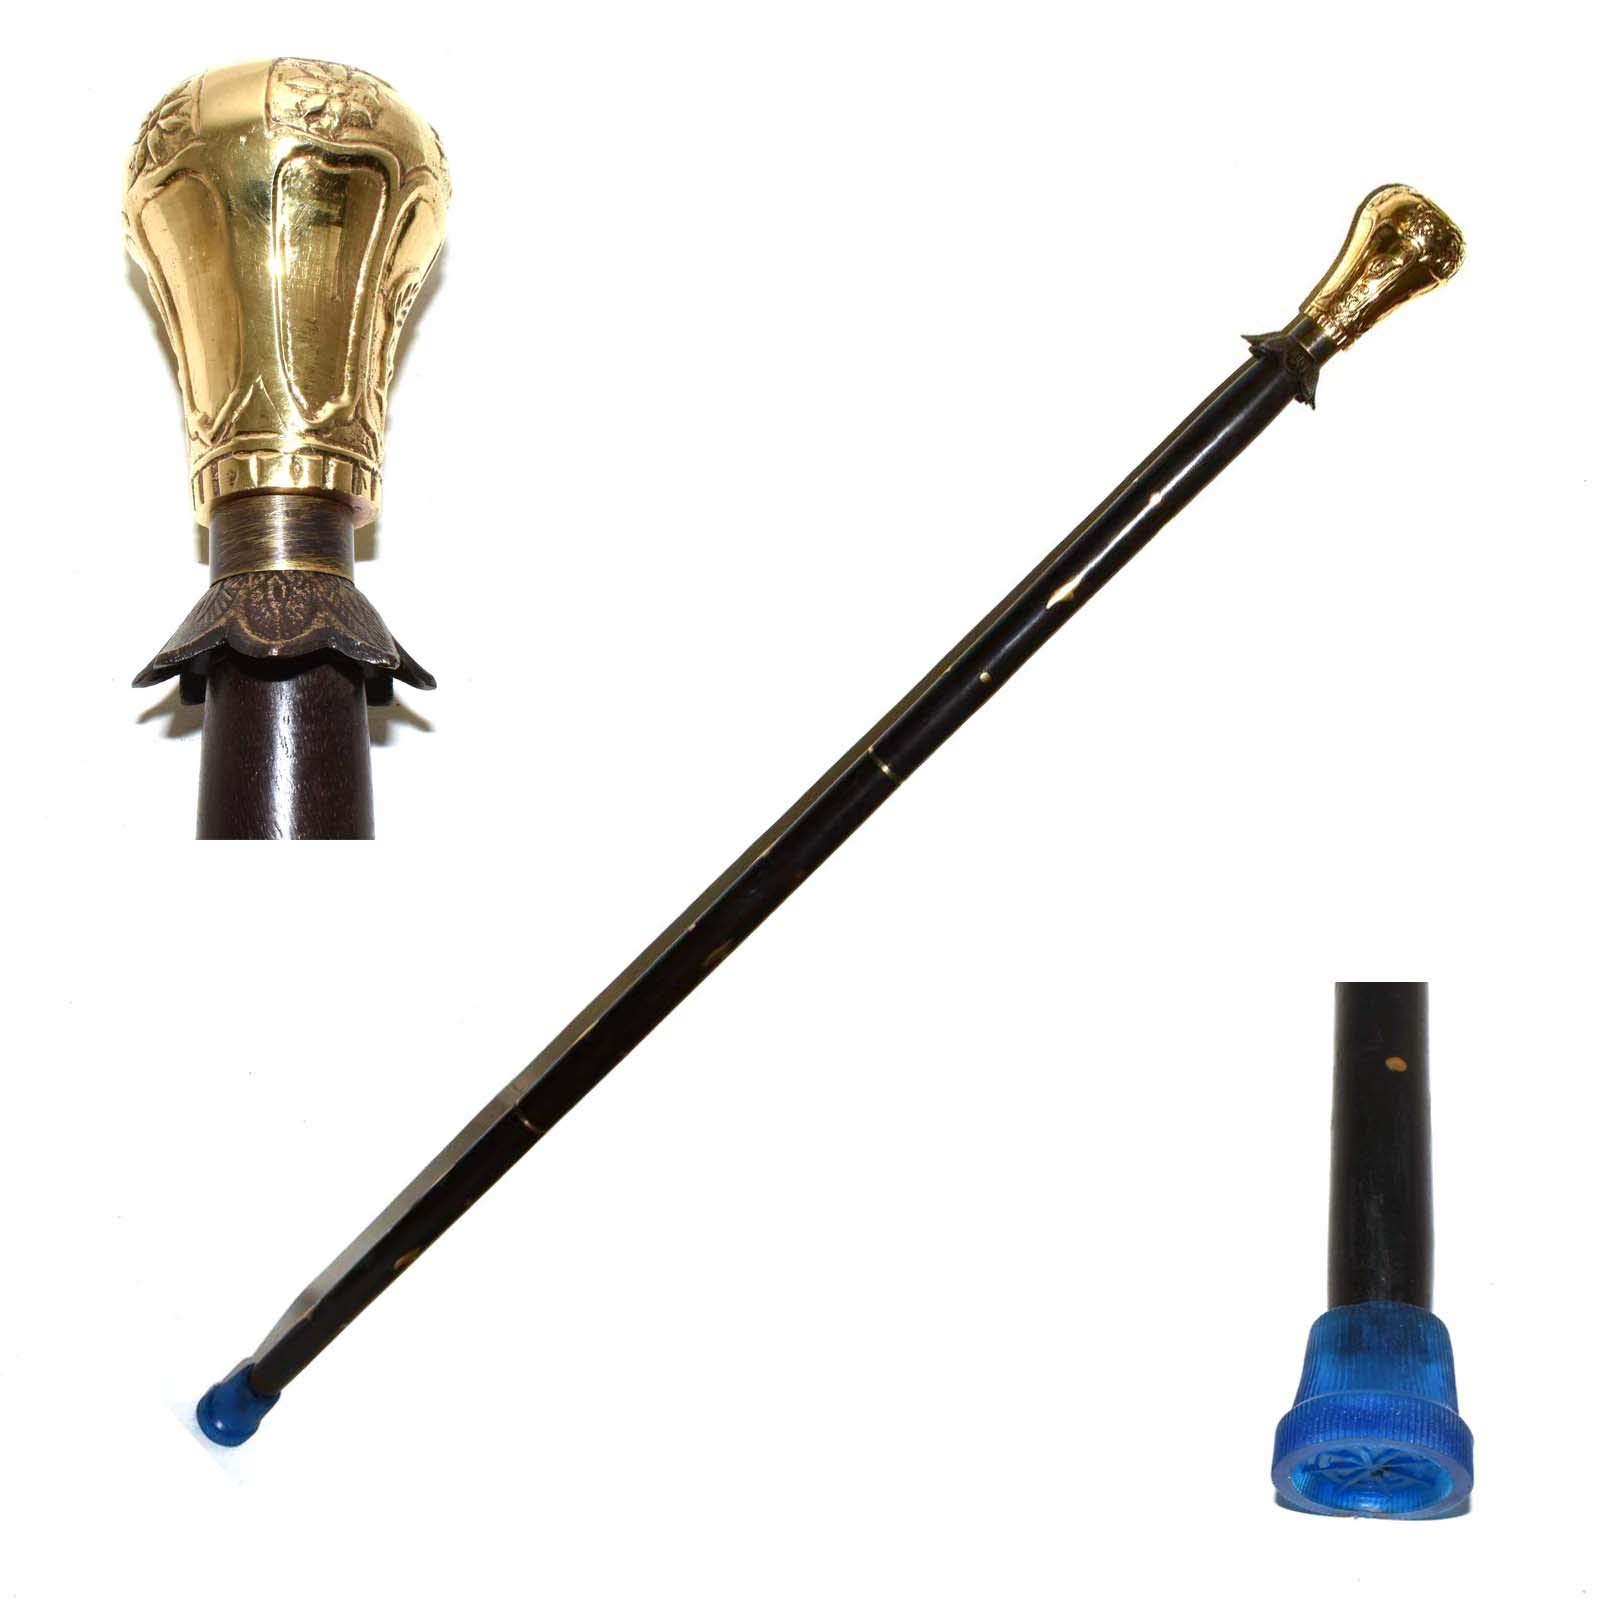 Hello Nauticals Store Solid Cast Brass Handle Cane with Wooden Walking Brass Stick for Men & Women.